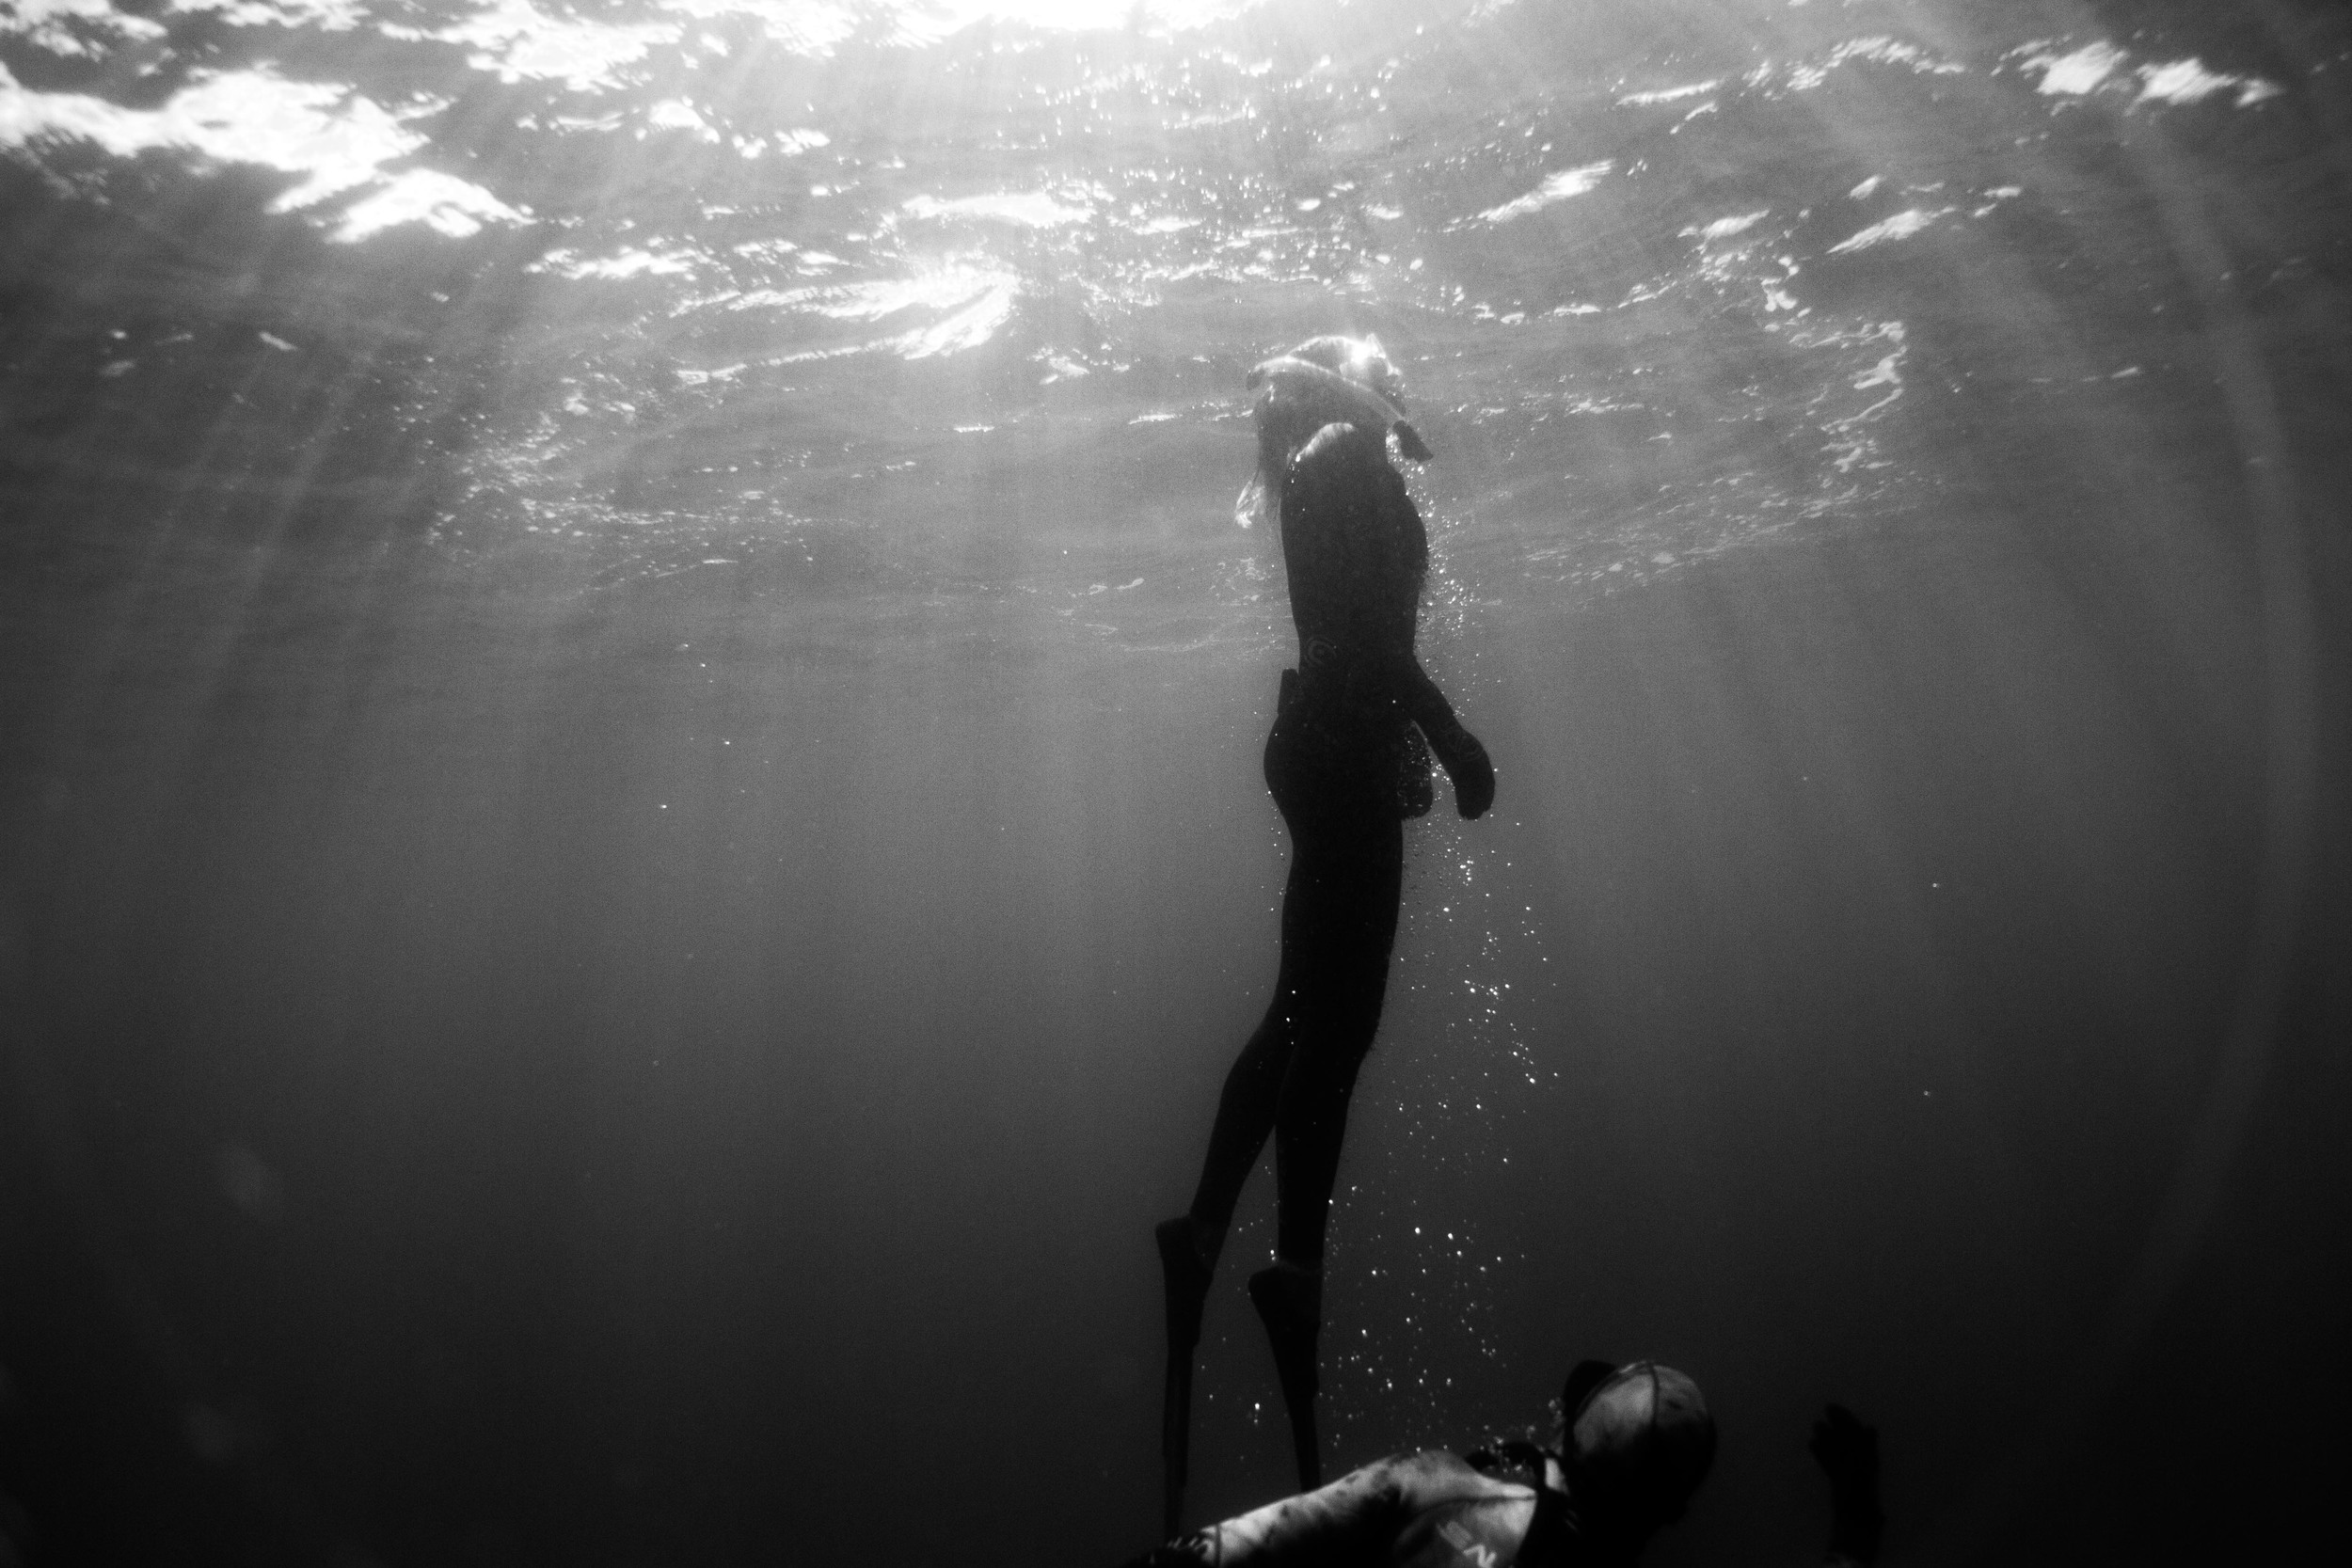 Freediving-6.jpg